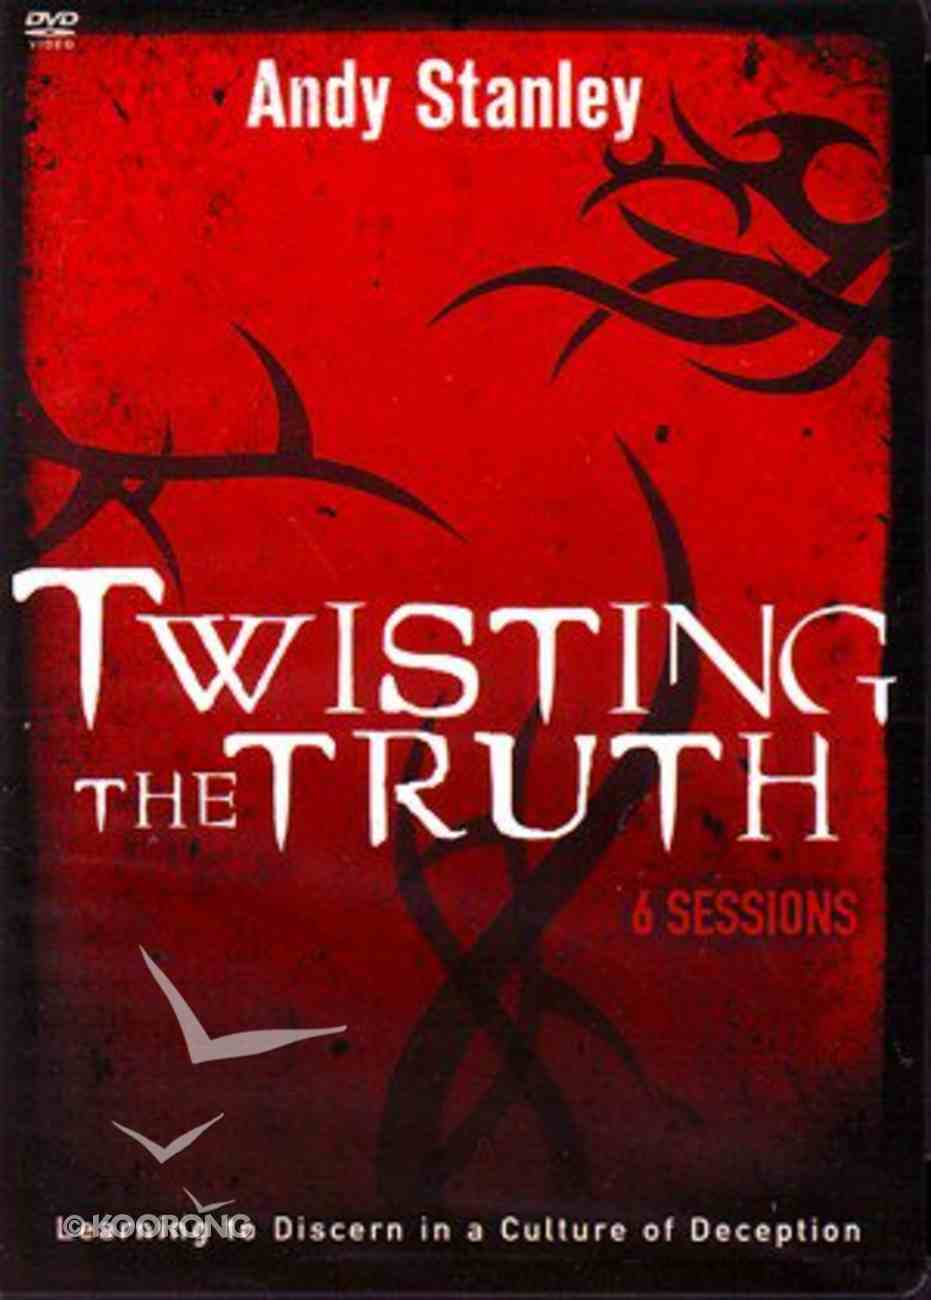 Twisting the Truth DVD (5 Sessions) DVD